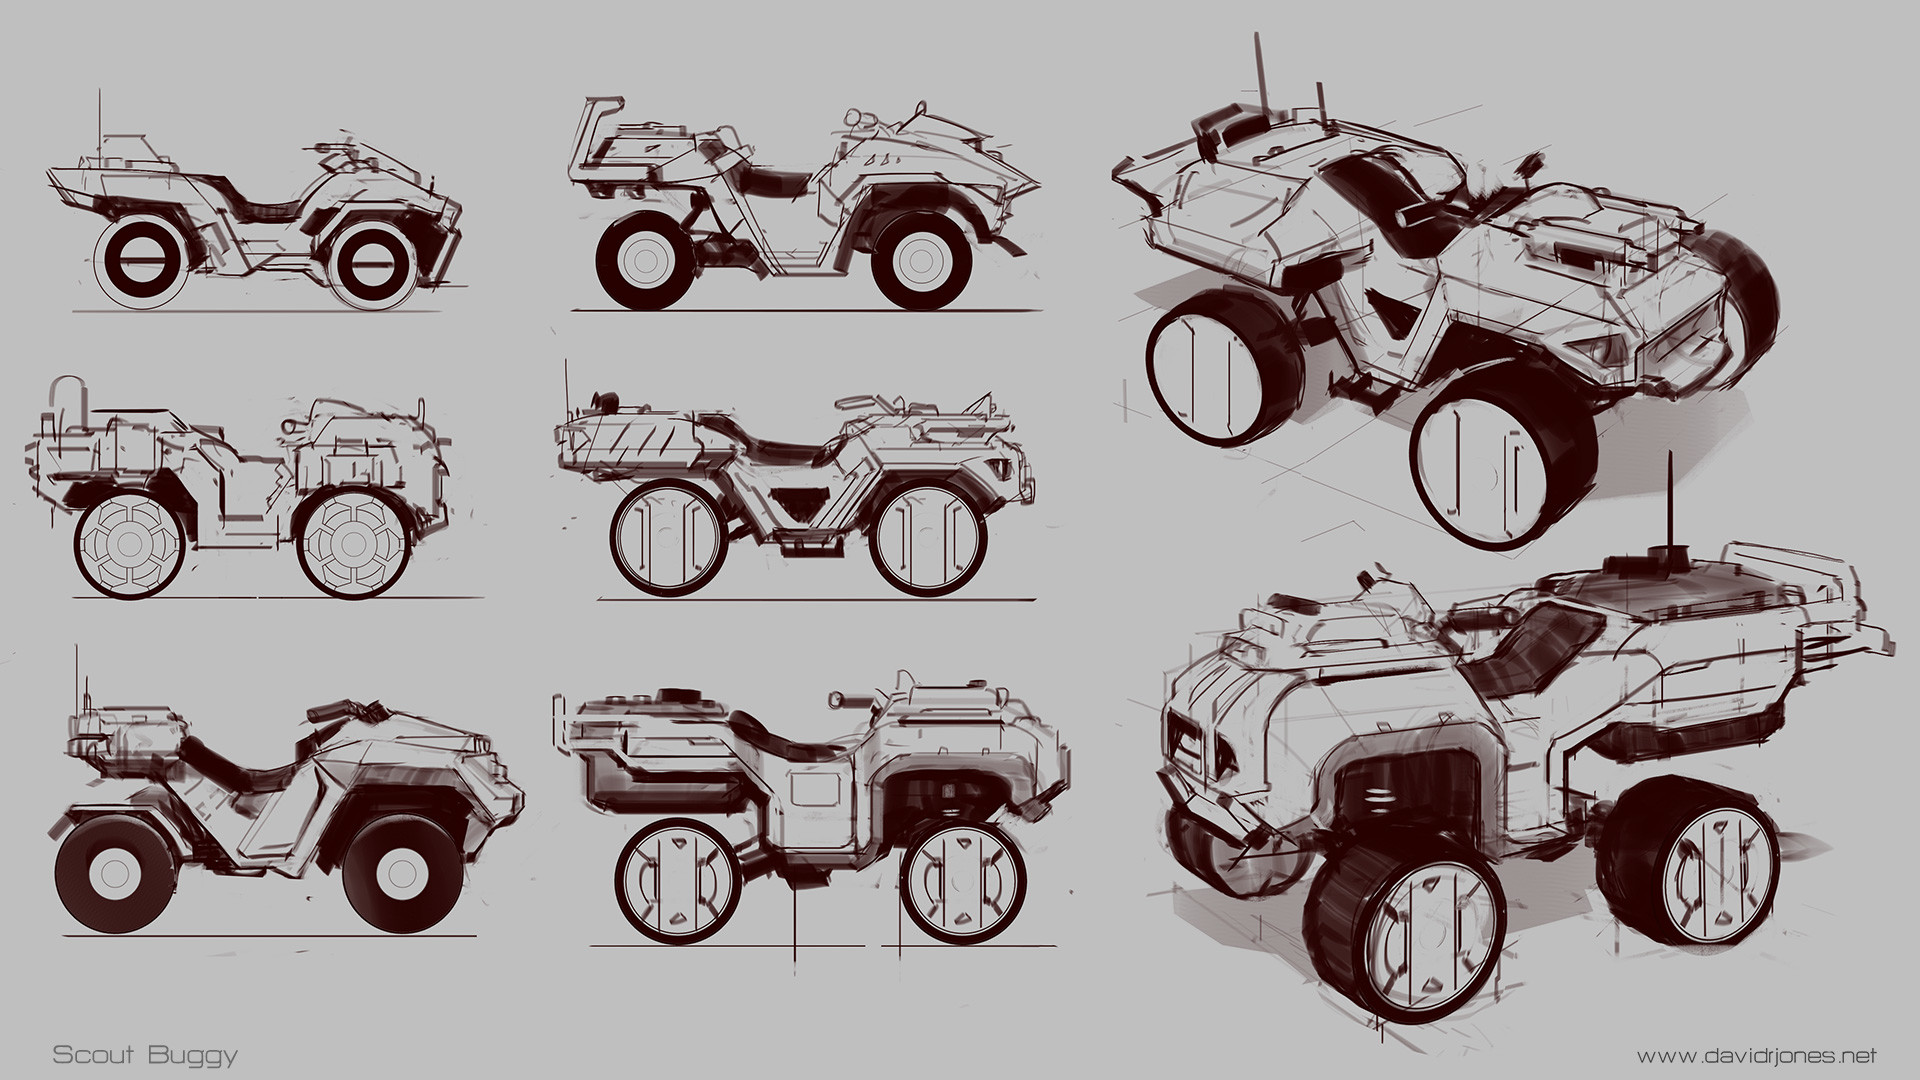 Dave jones buggy sketch